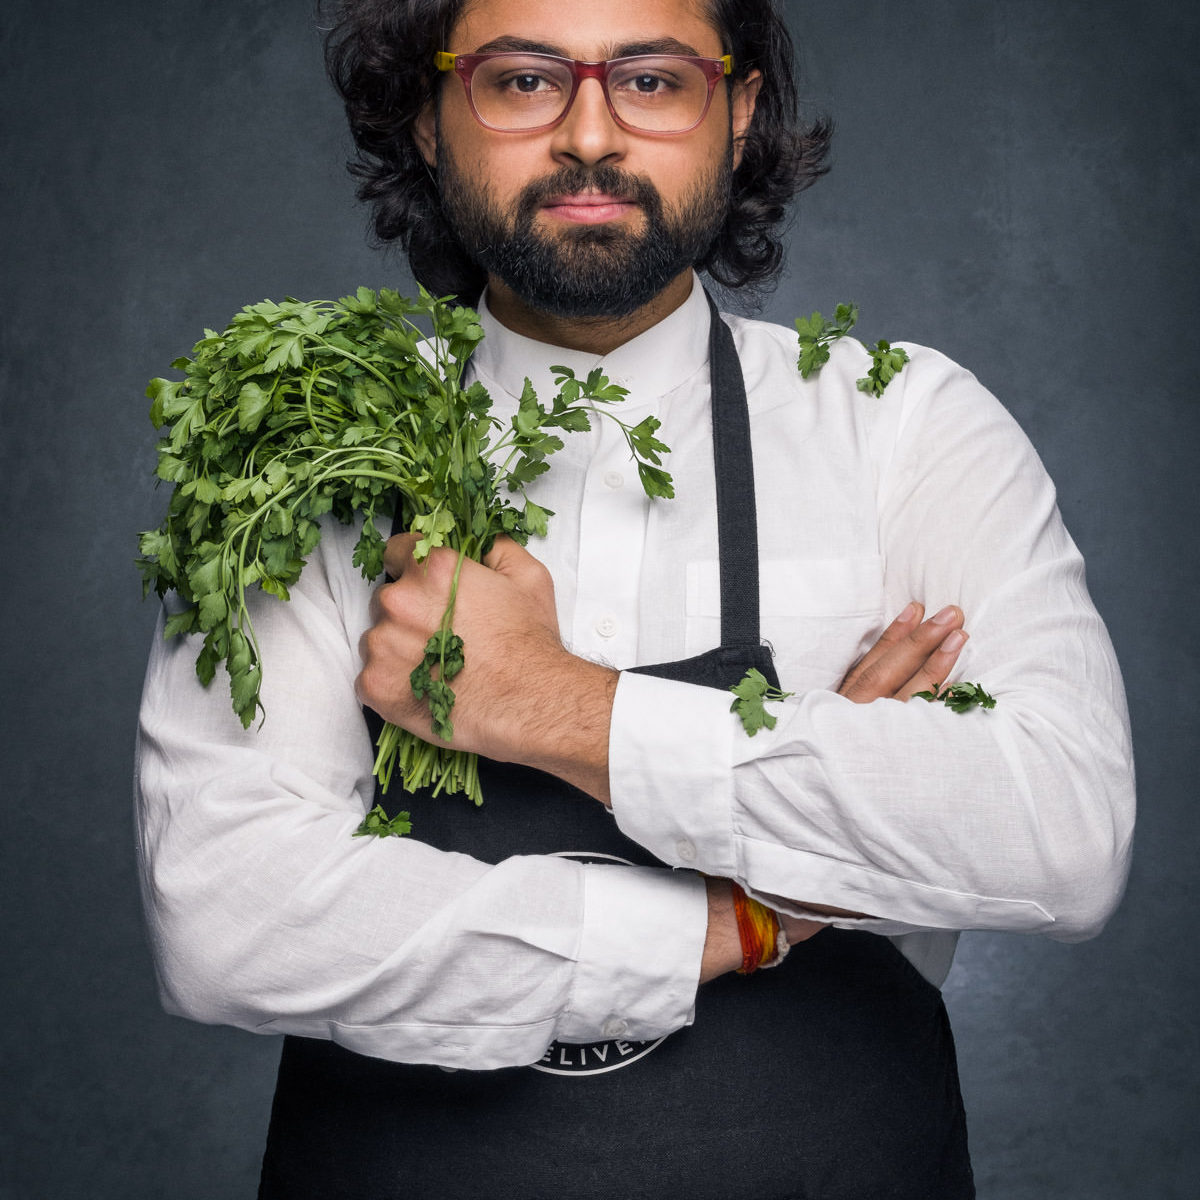 Personal Branding Photography of an Indian chef holding herbs